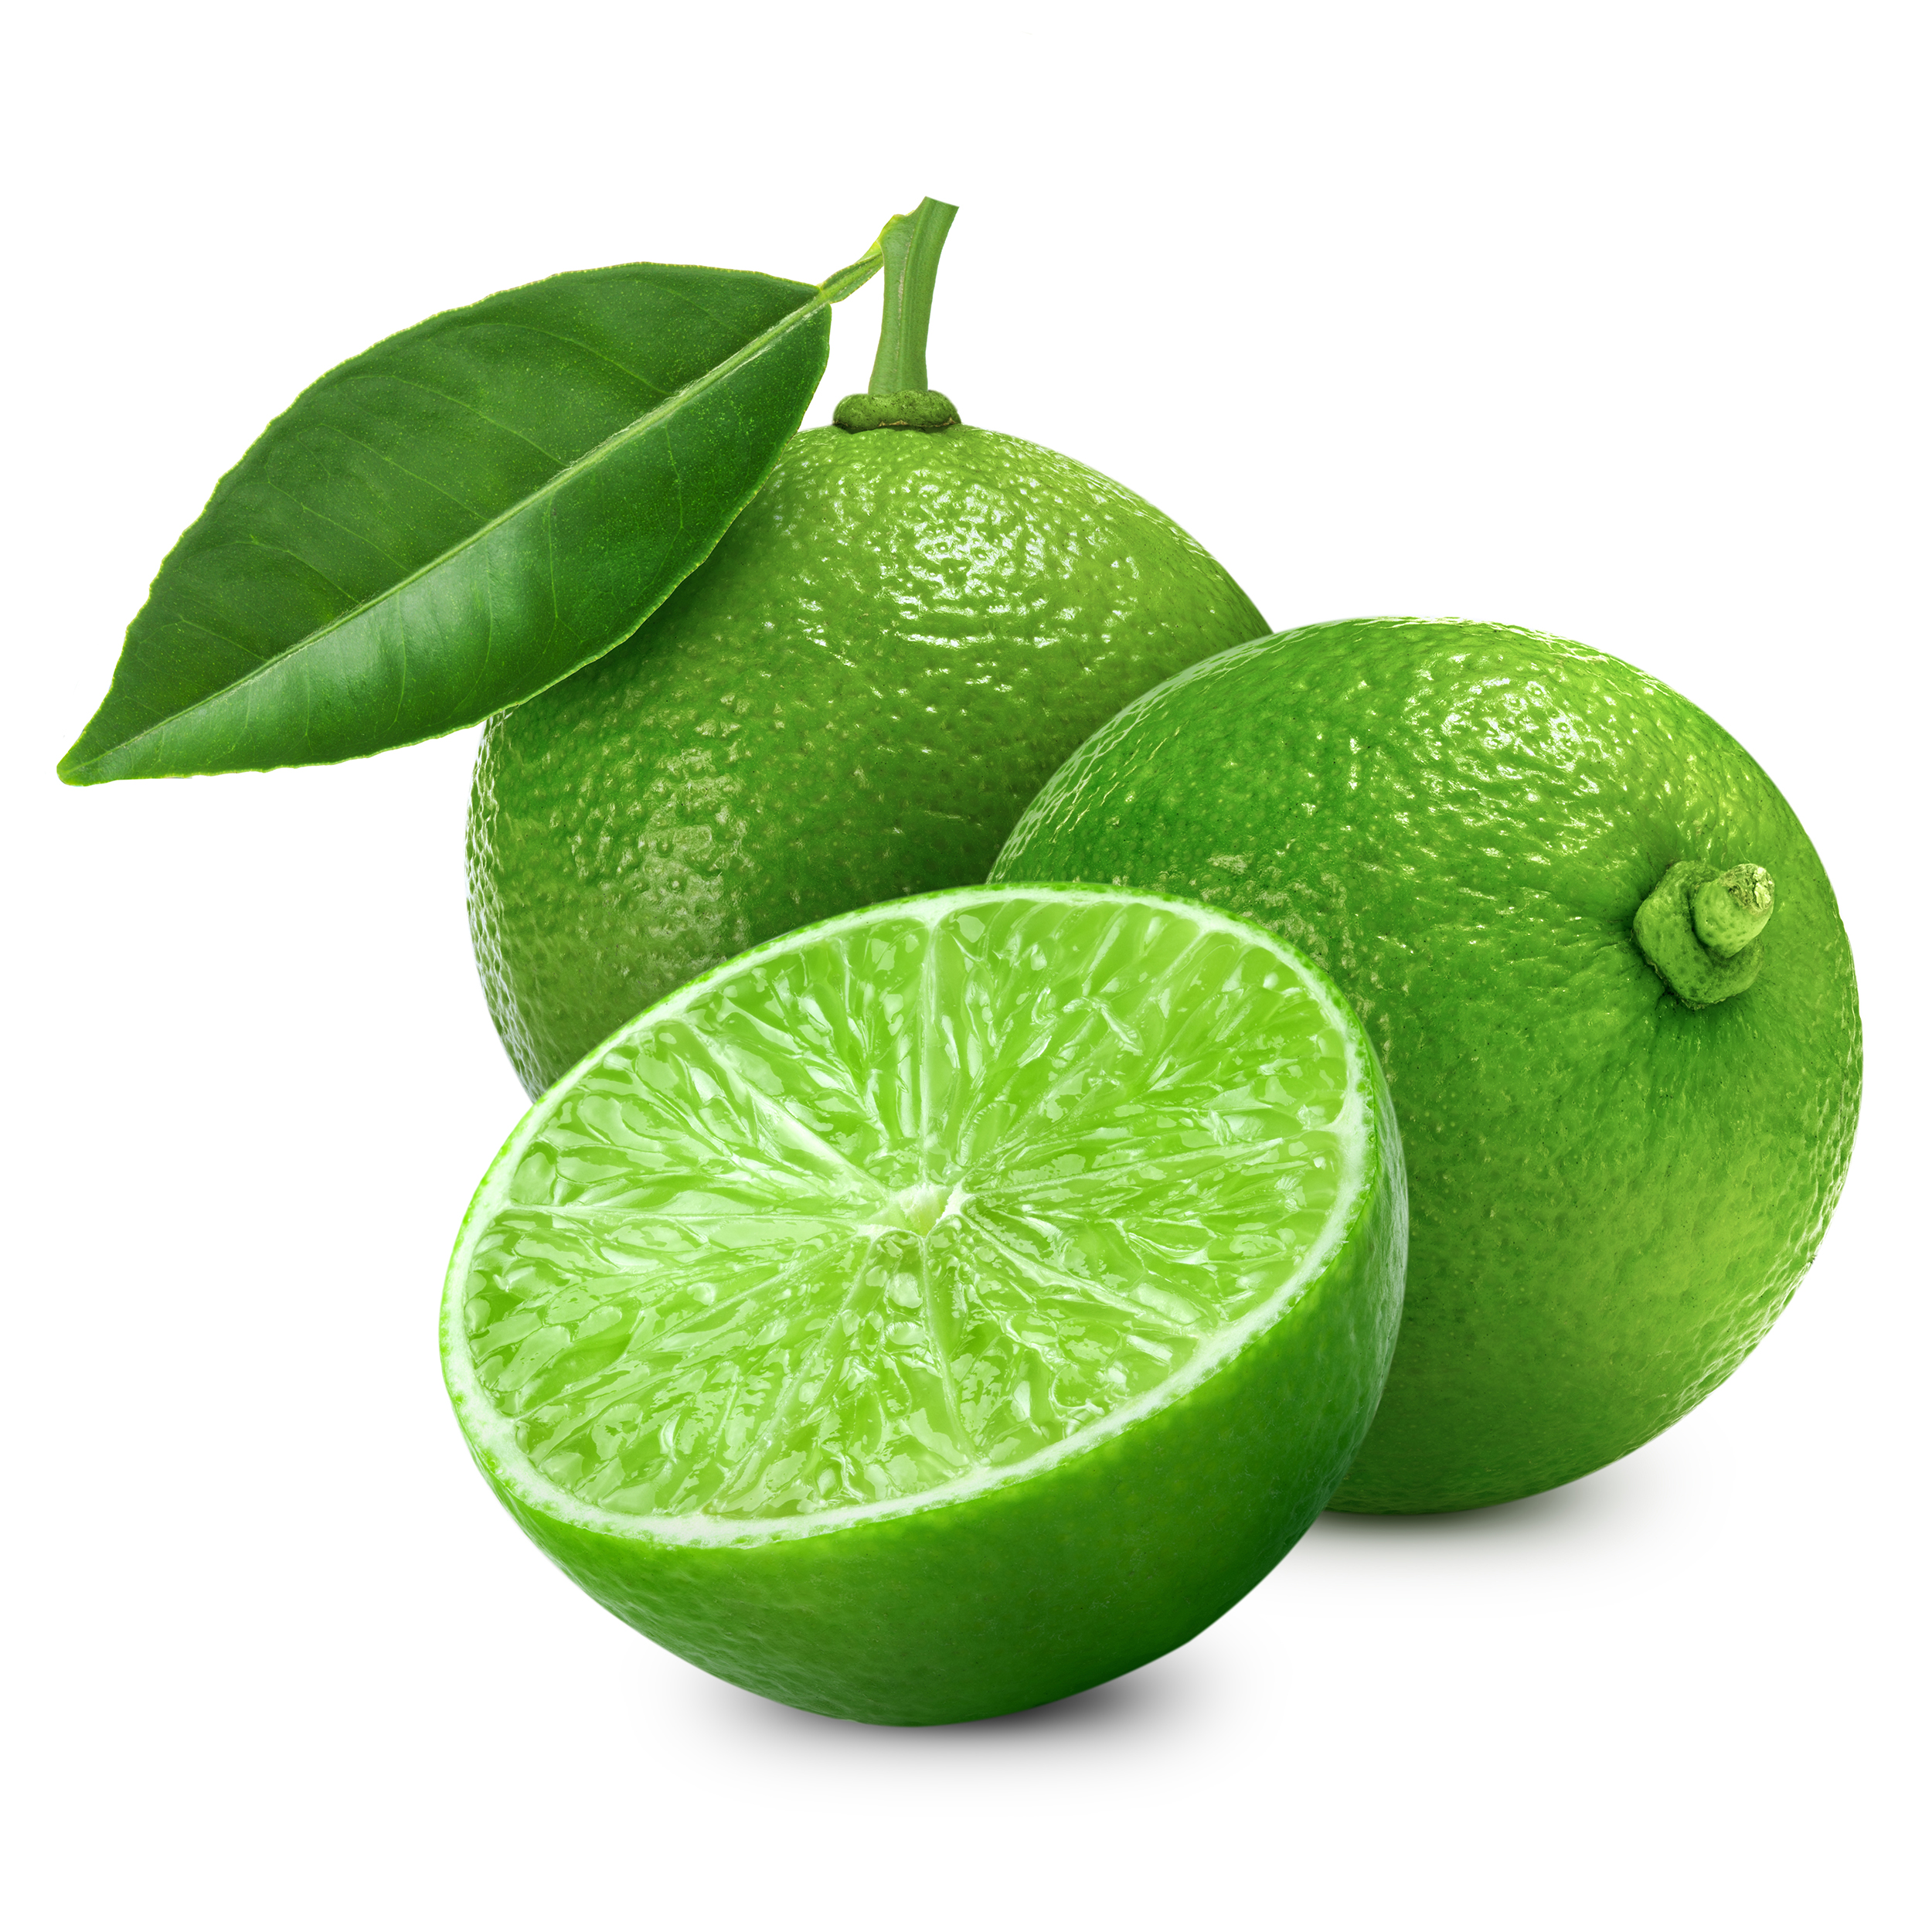 Wholesale Perfect Pact Fresh Limes sourced from family farms in the USA